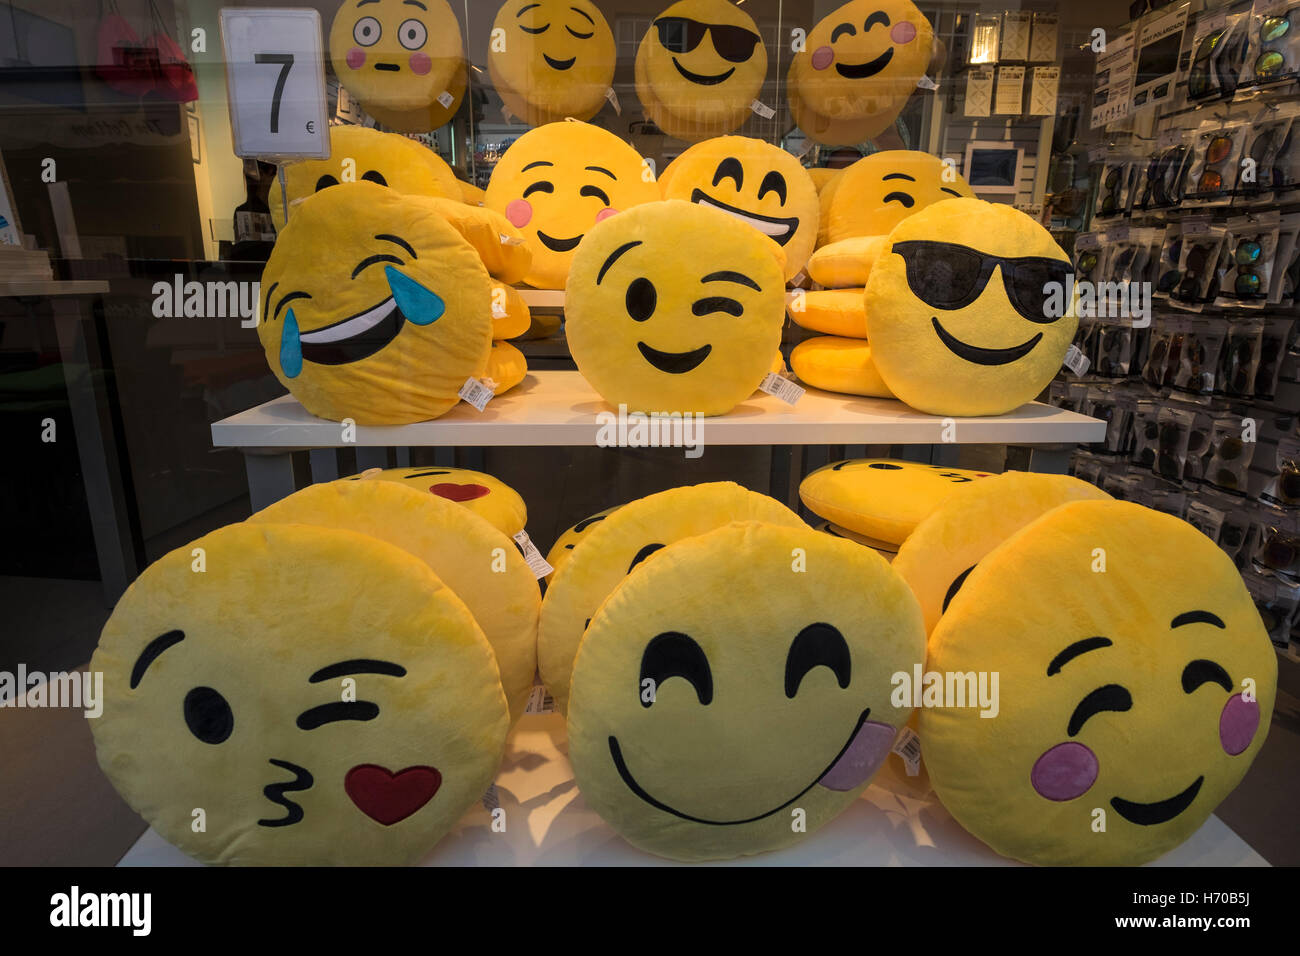 Cushions For Sale Emoji Cushions For Sale Stock Photo 124783950 Alamy